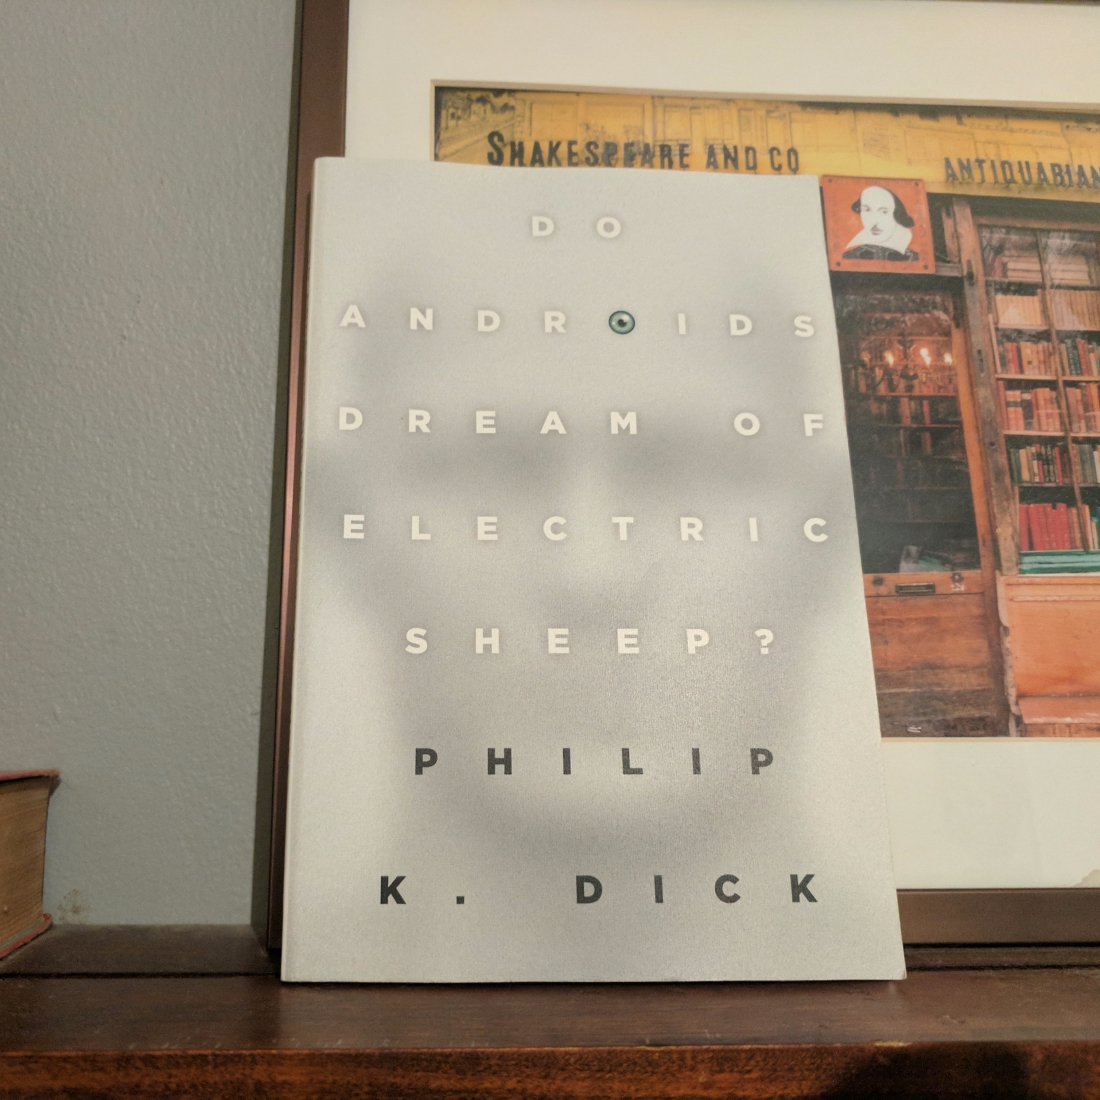 God, Philip K. Dick. You're the greatest